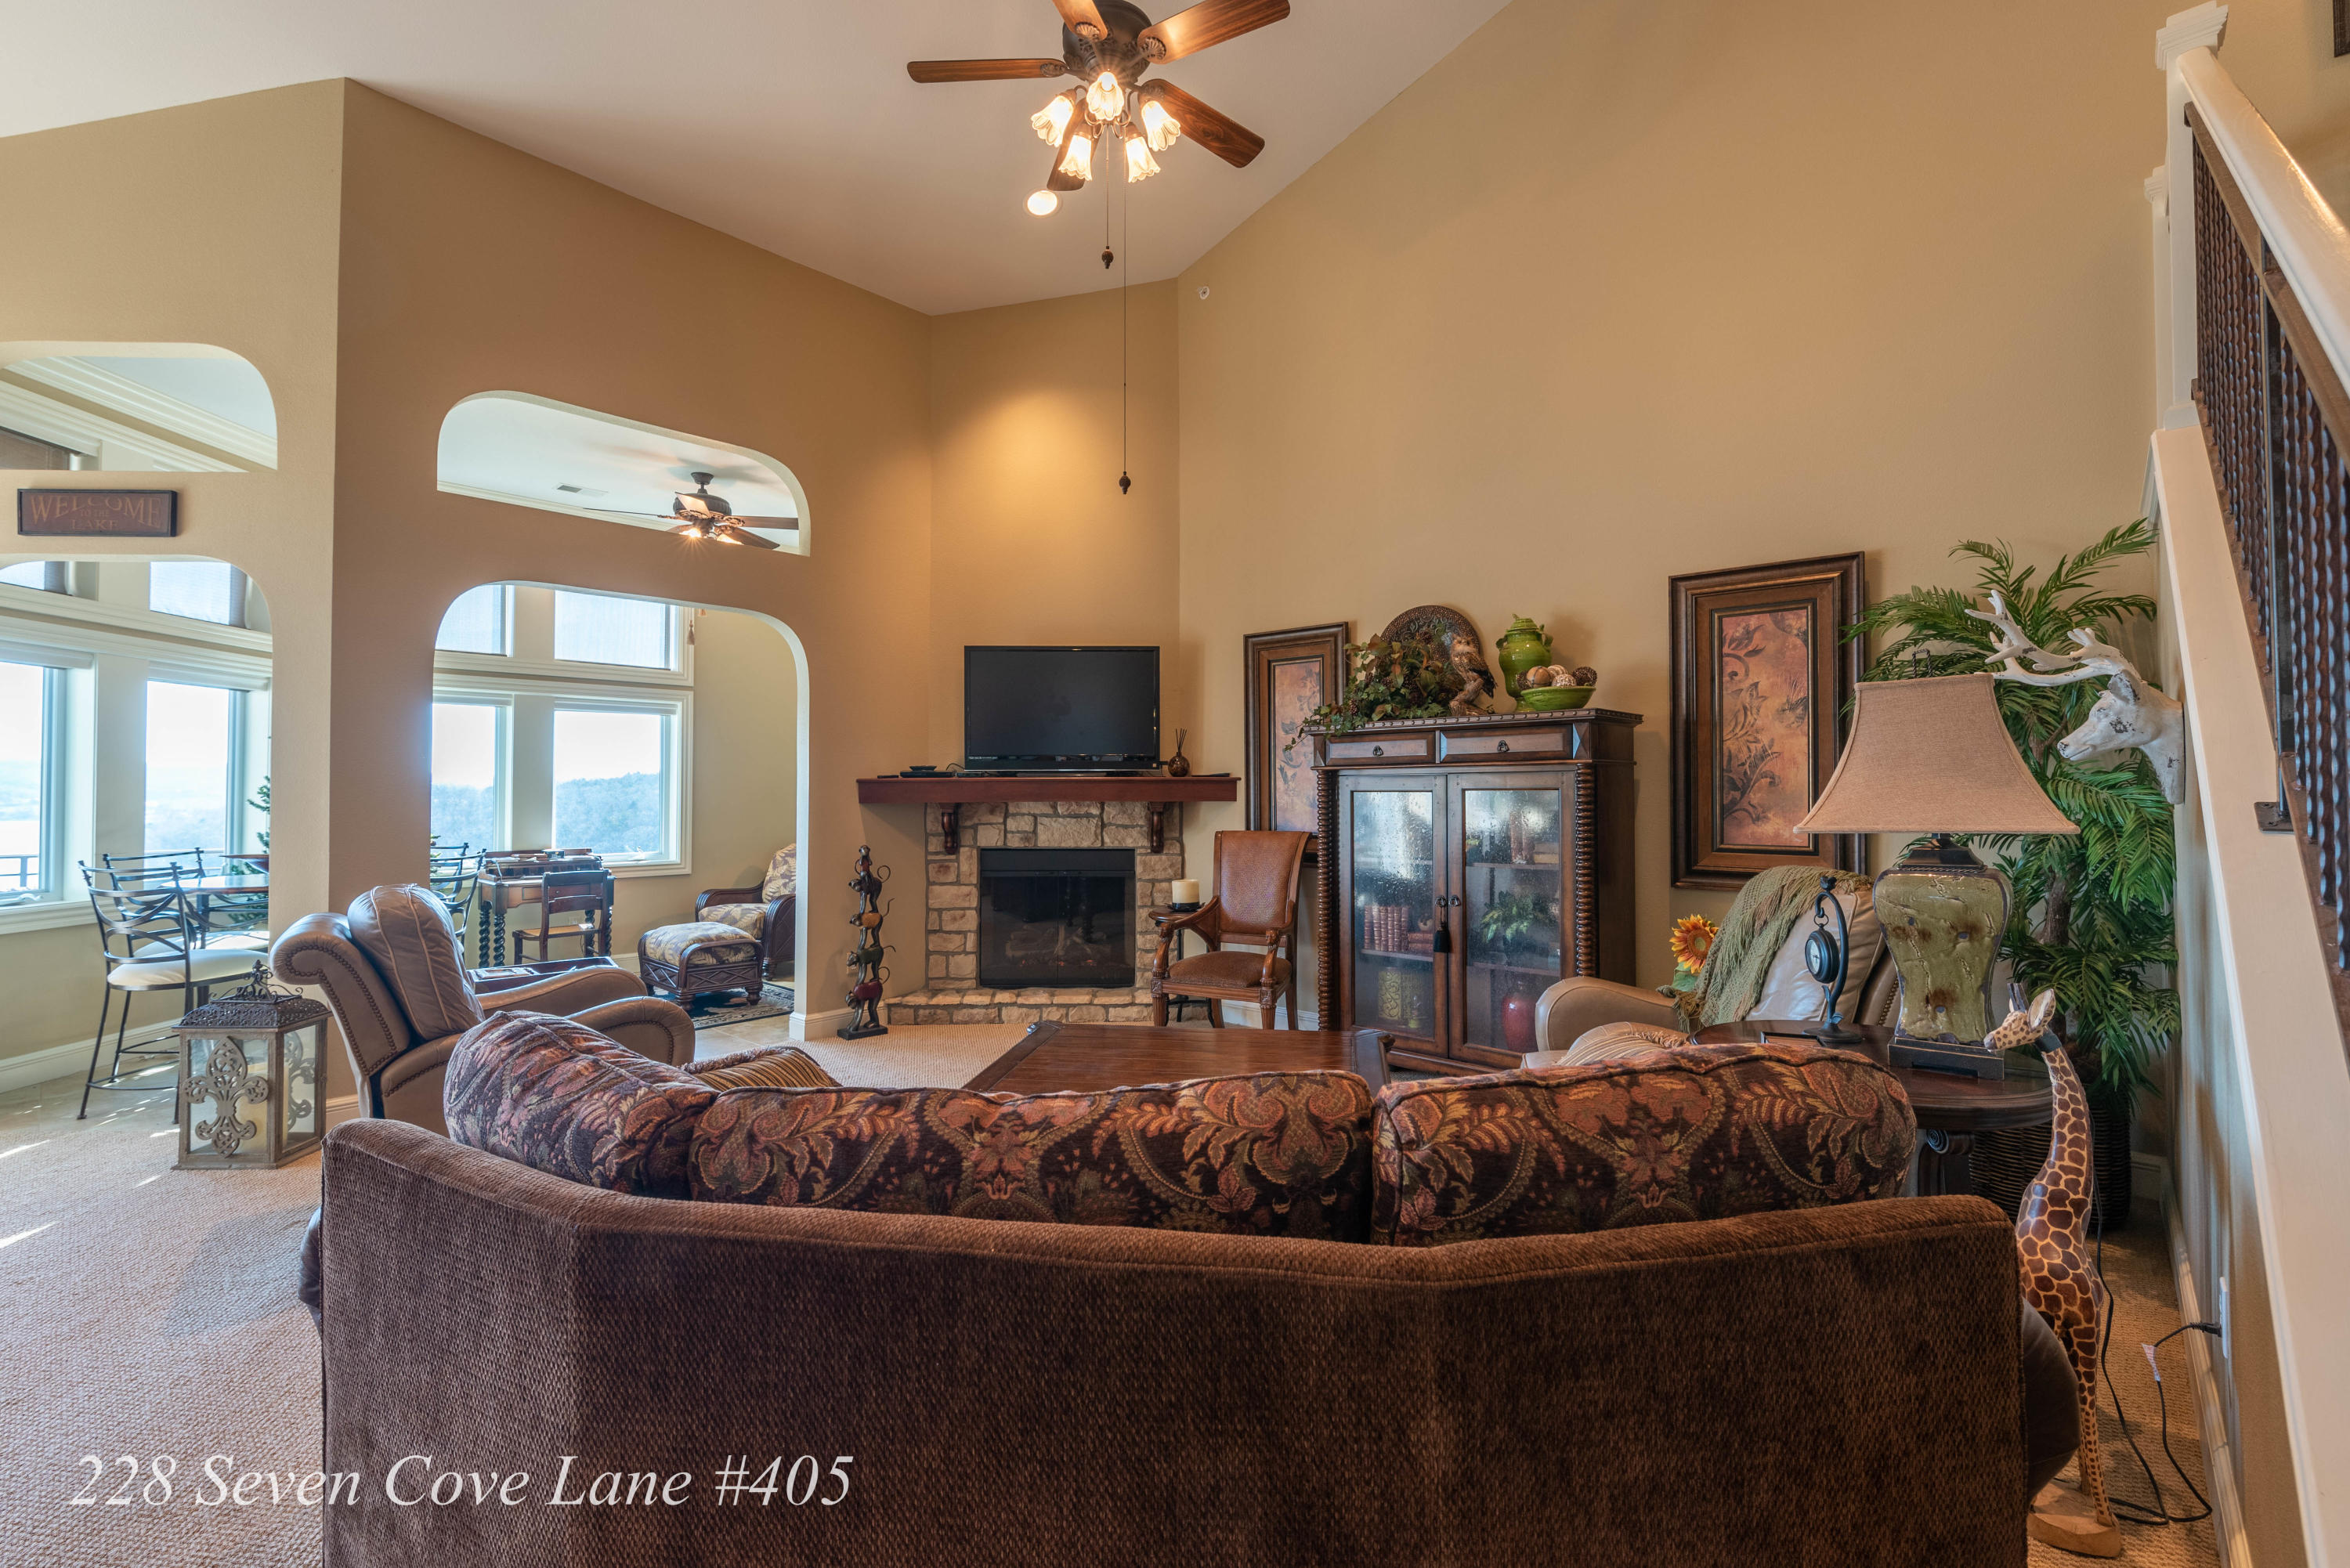 228 Seven Cove Lane #405 Kimberling City, MO 65686